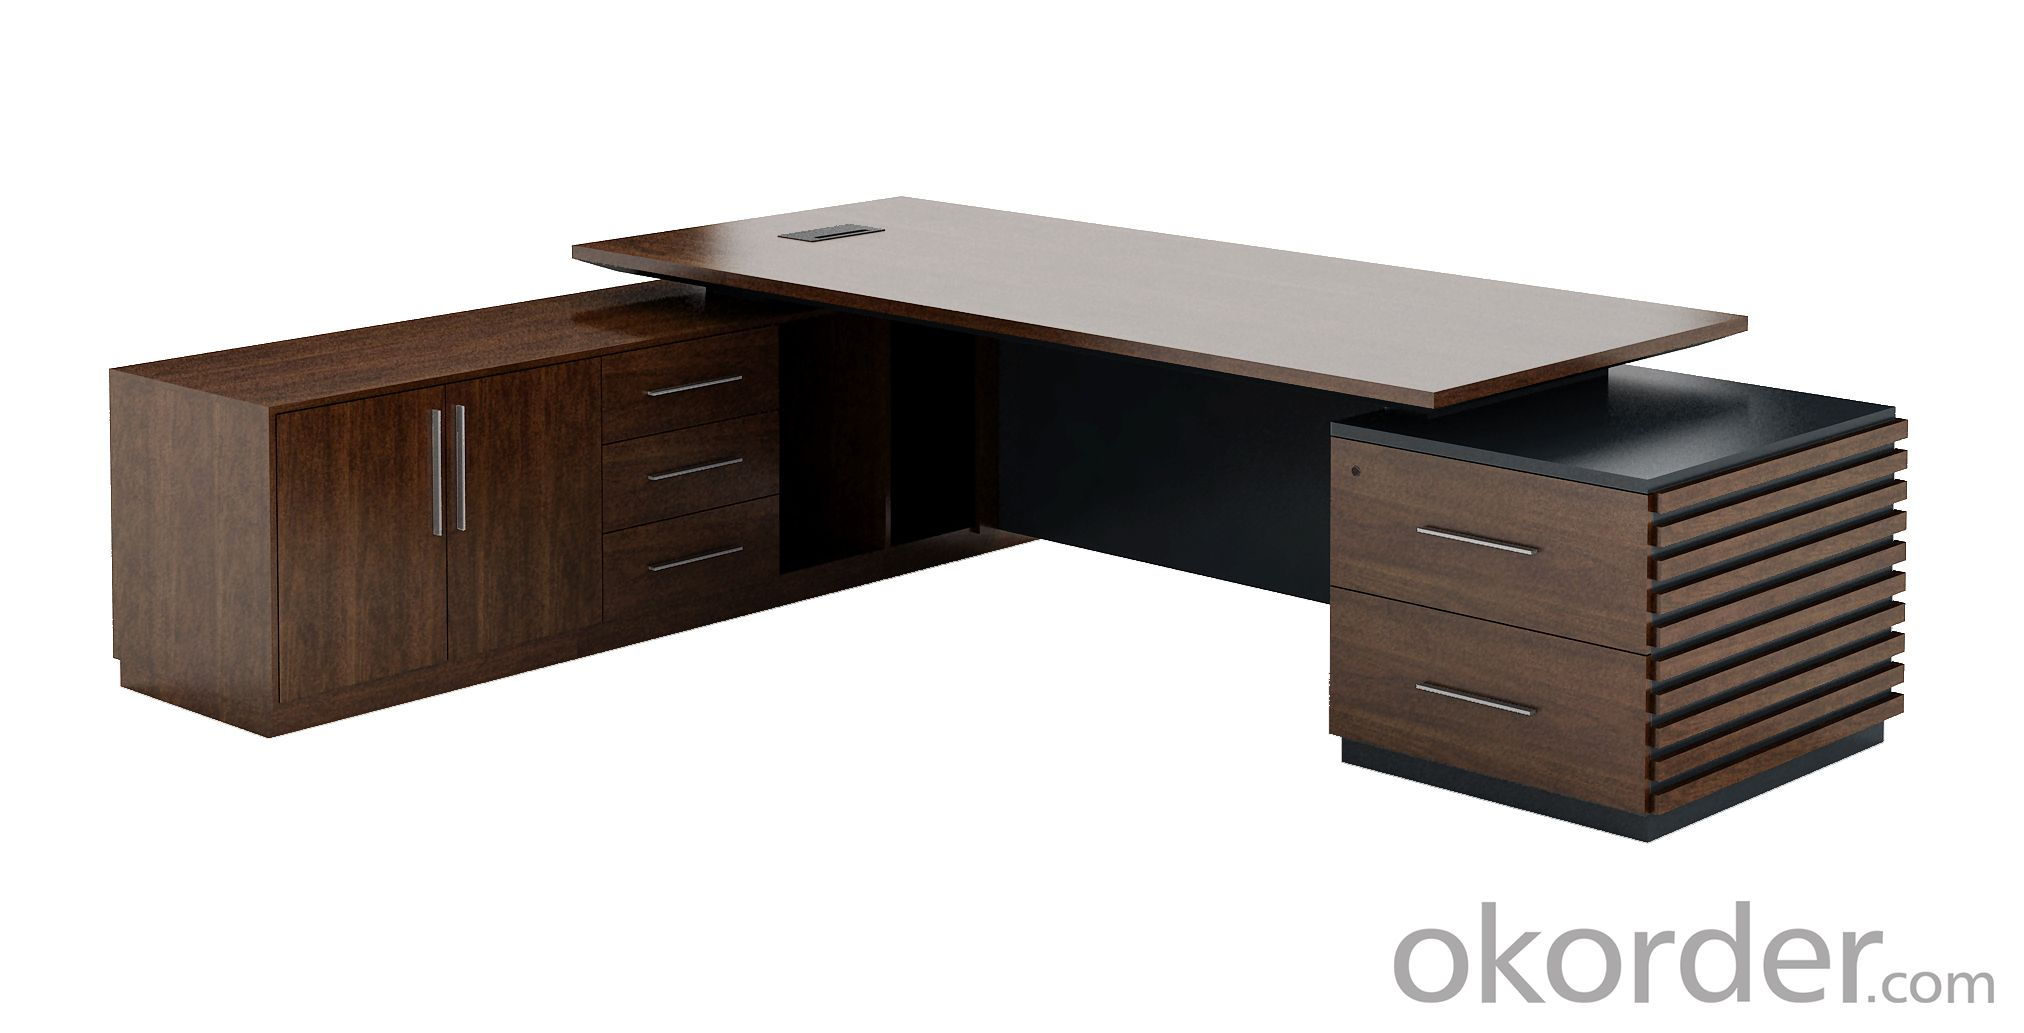 Home Decor For Less Online Buy Office Table Sets Mdf Board Material Modern Design